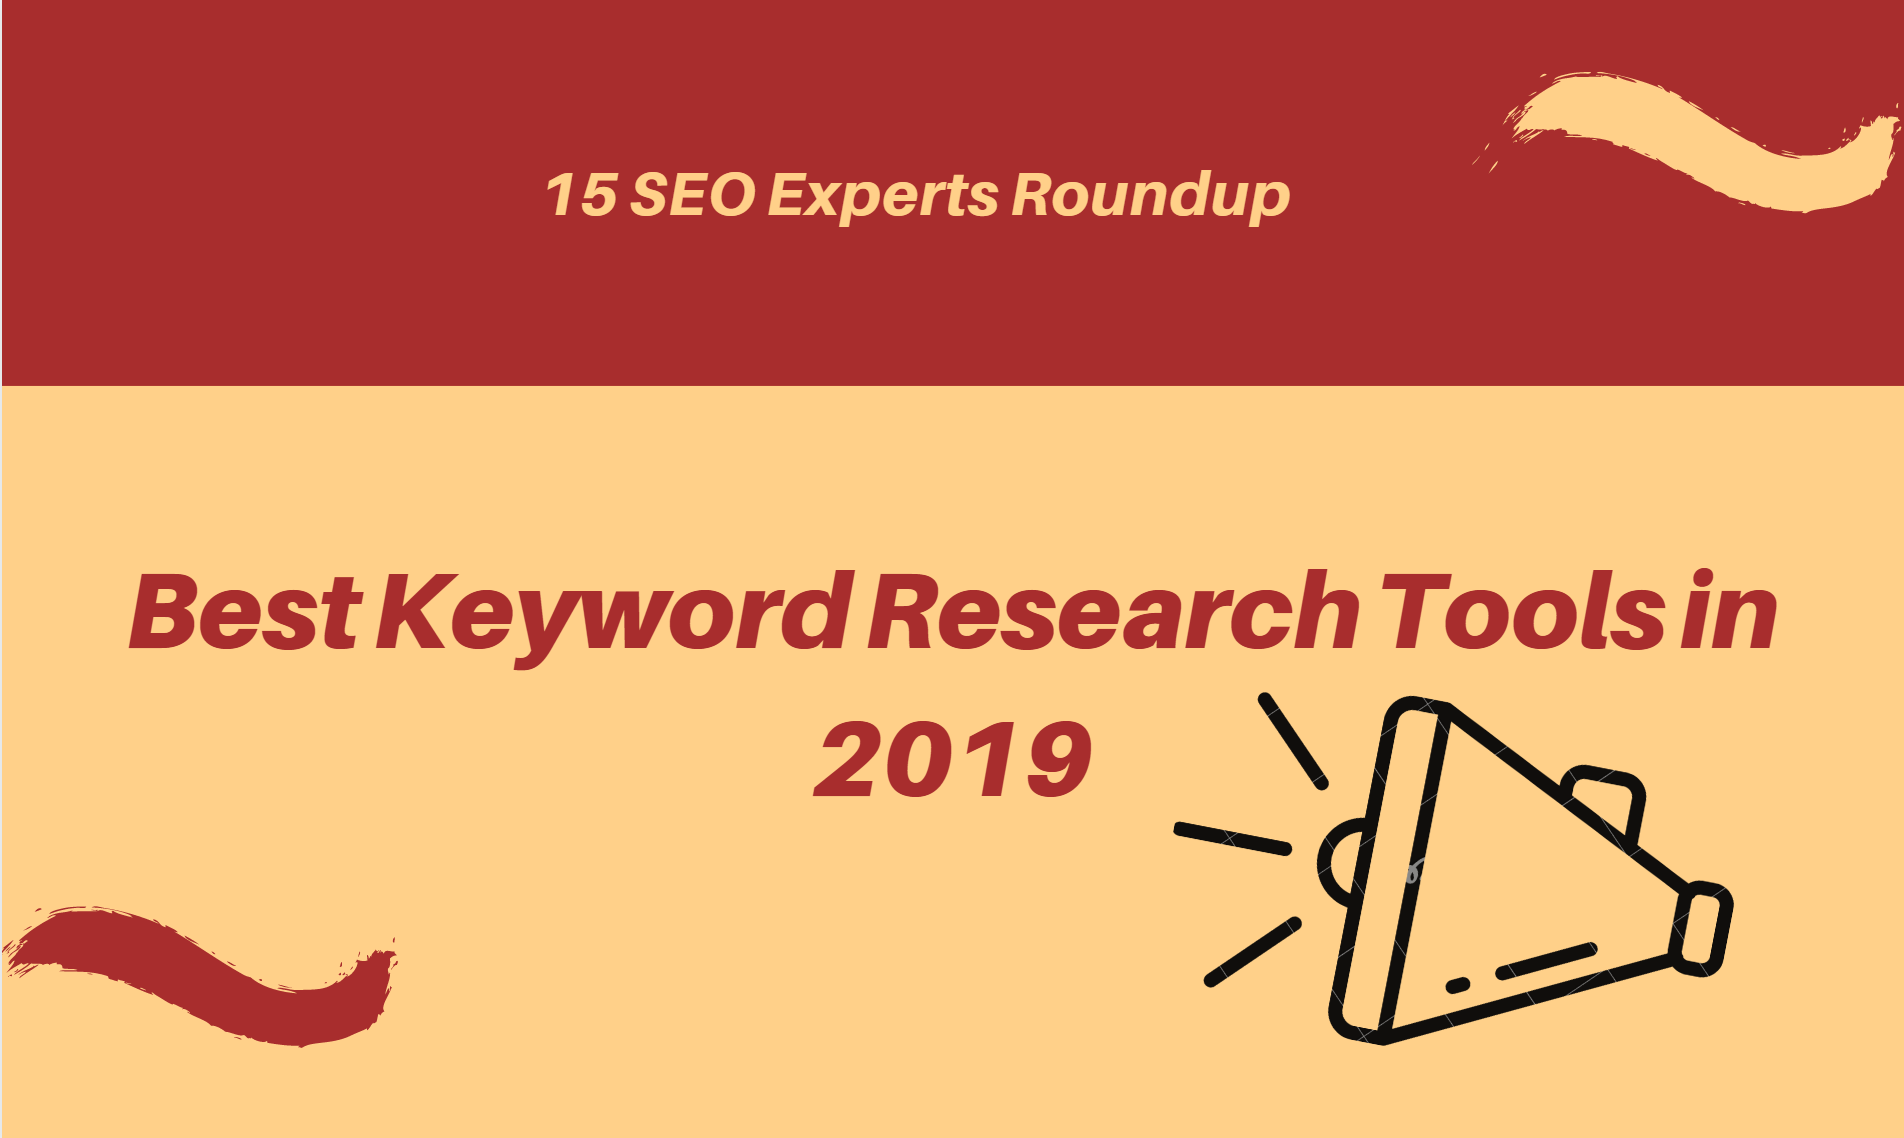 seo experts roundup best keyyword research tool